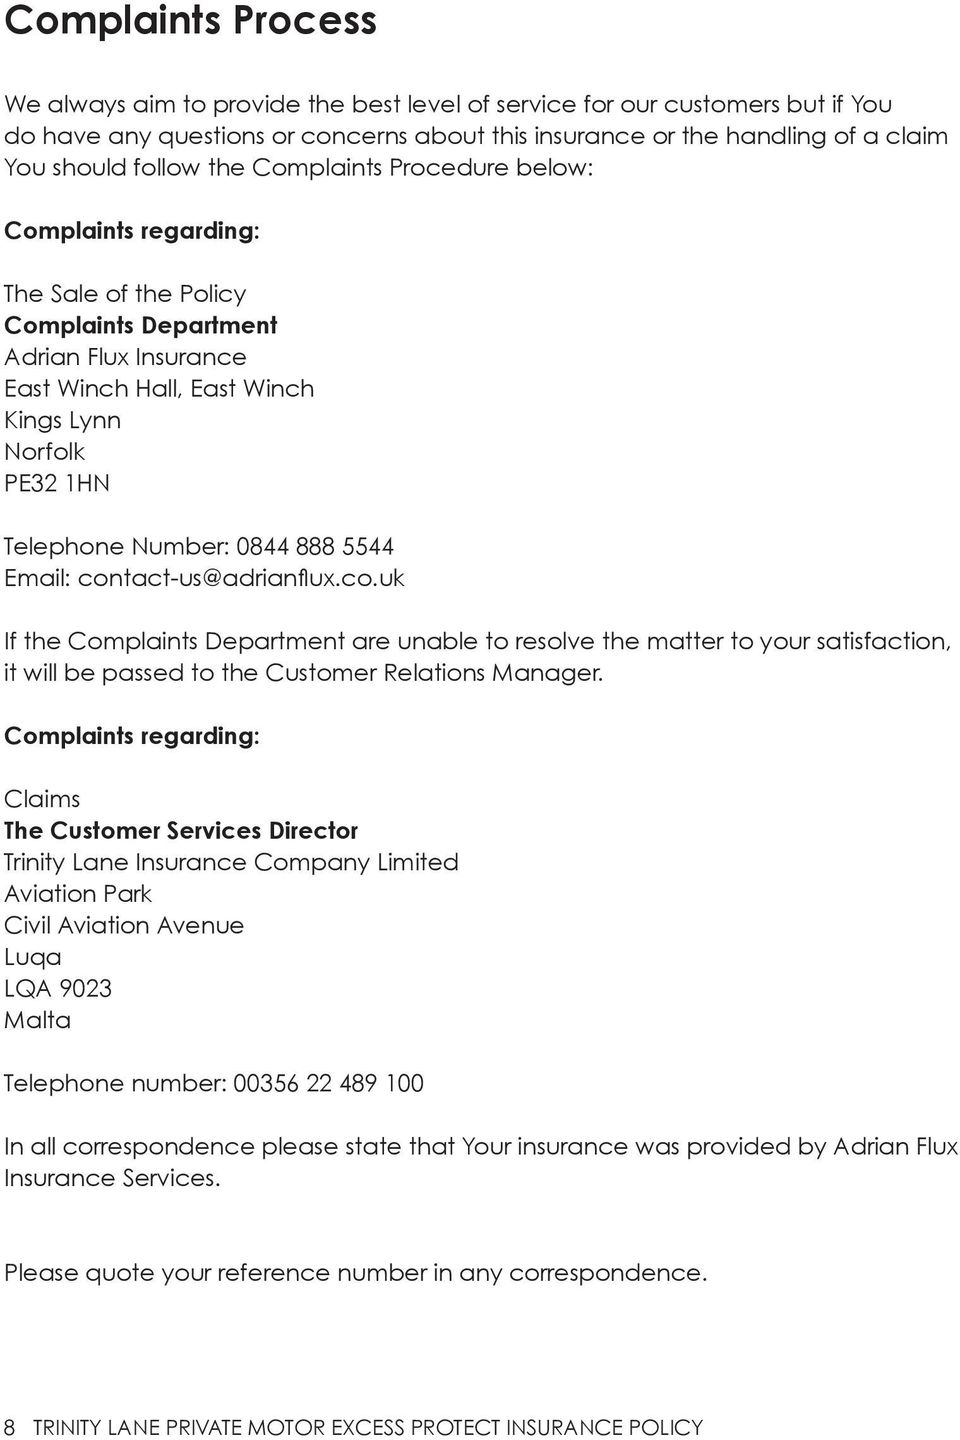 888 5544 Email: contact-us@adrianflux.co.uk If the Complaints Department are unable to resolve the matter to your satisfaction, it will be passed to the Customer Relations Manager.